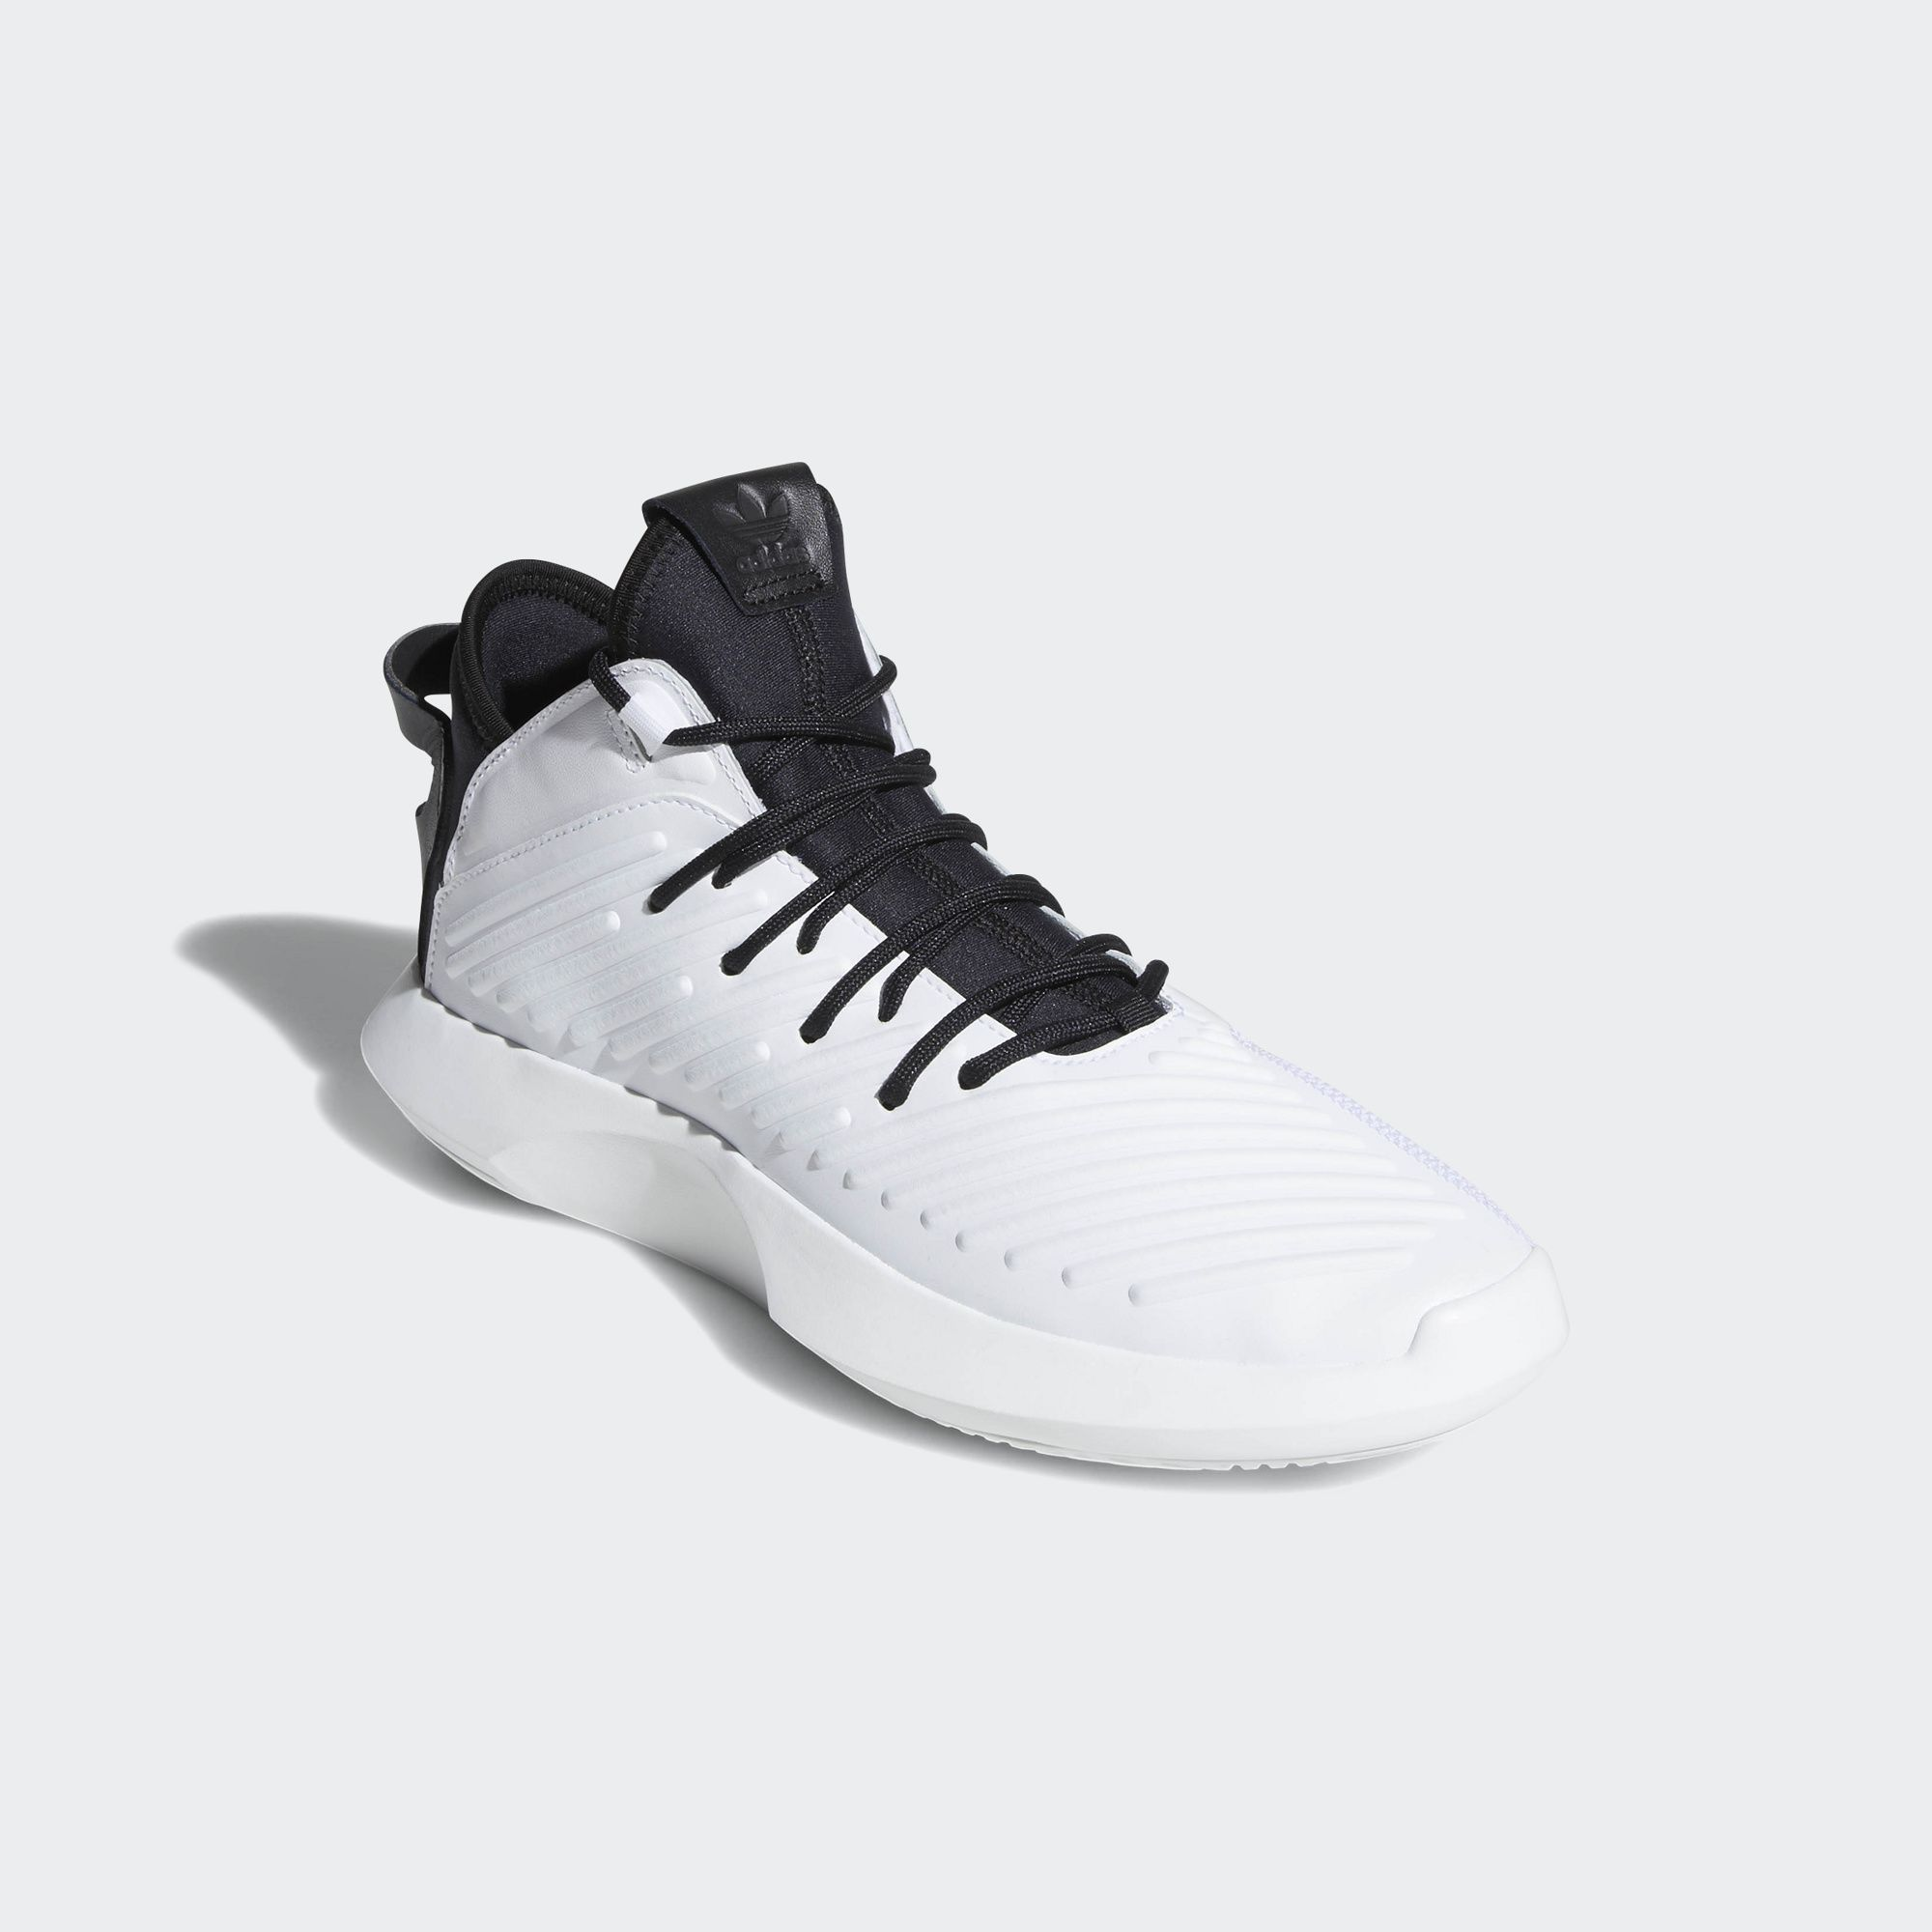 wholesale dealer 7d191 1816d ... adidas crazy 1 adv white black 4